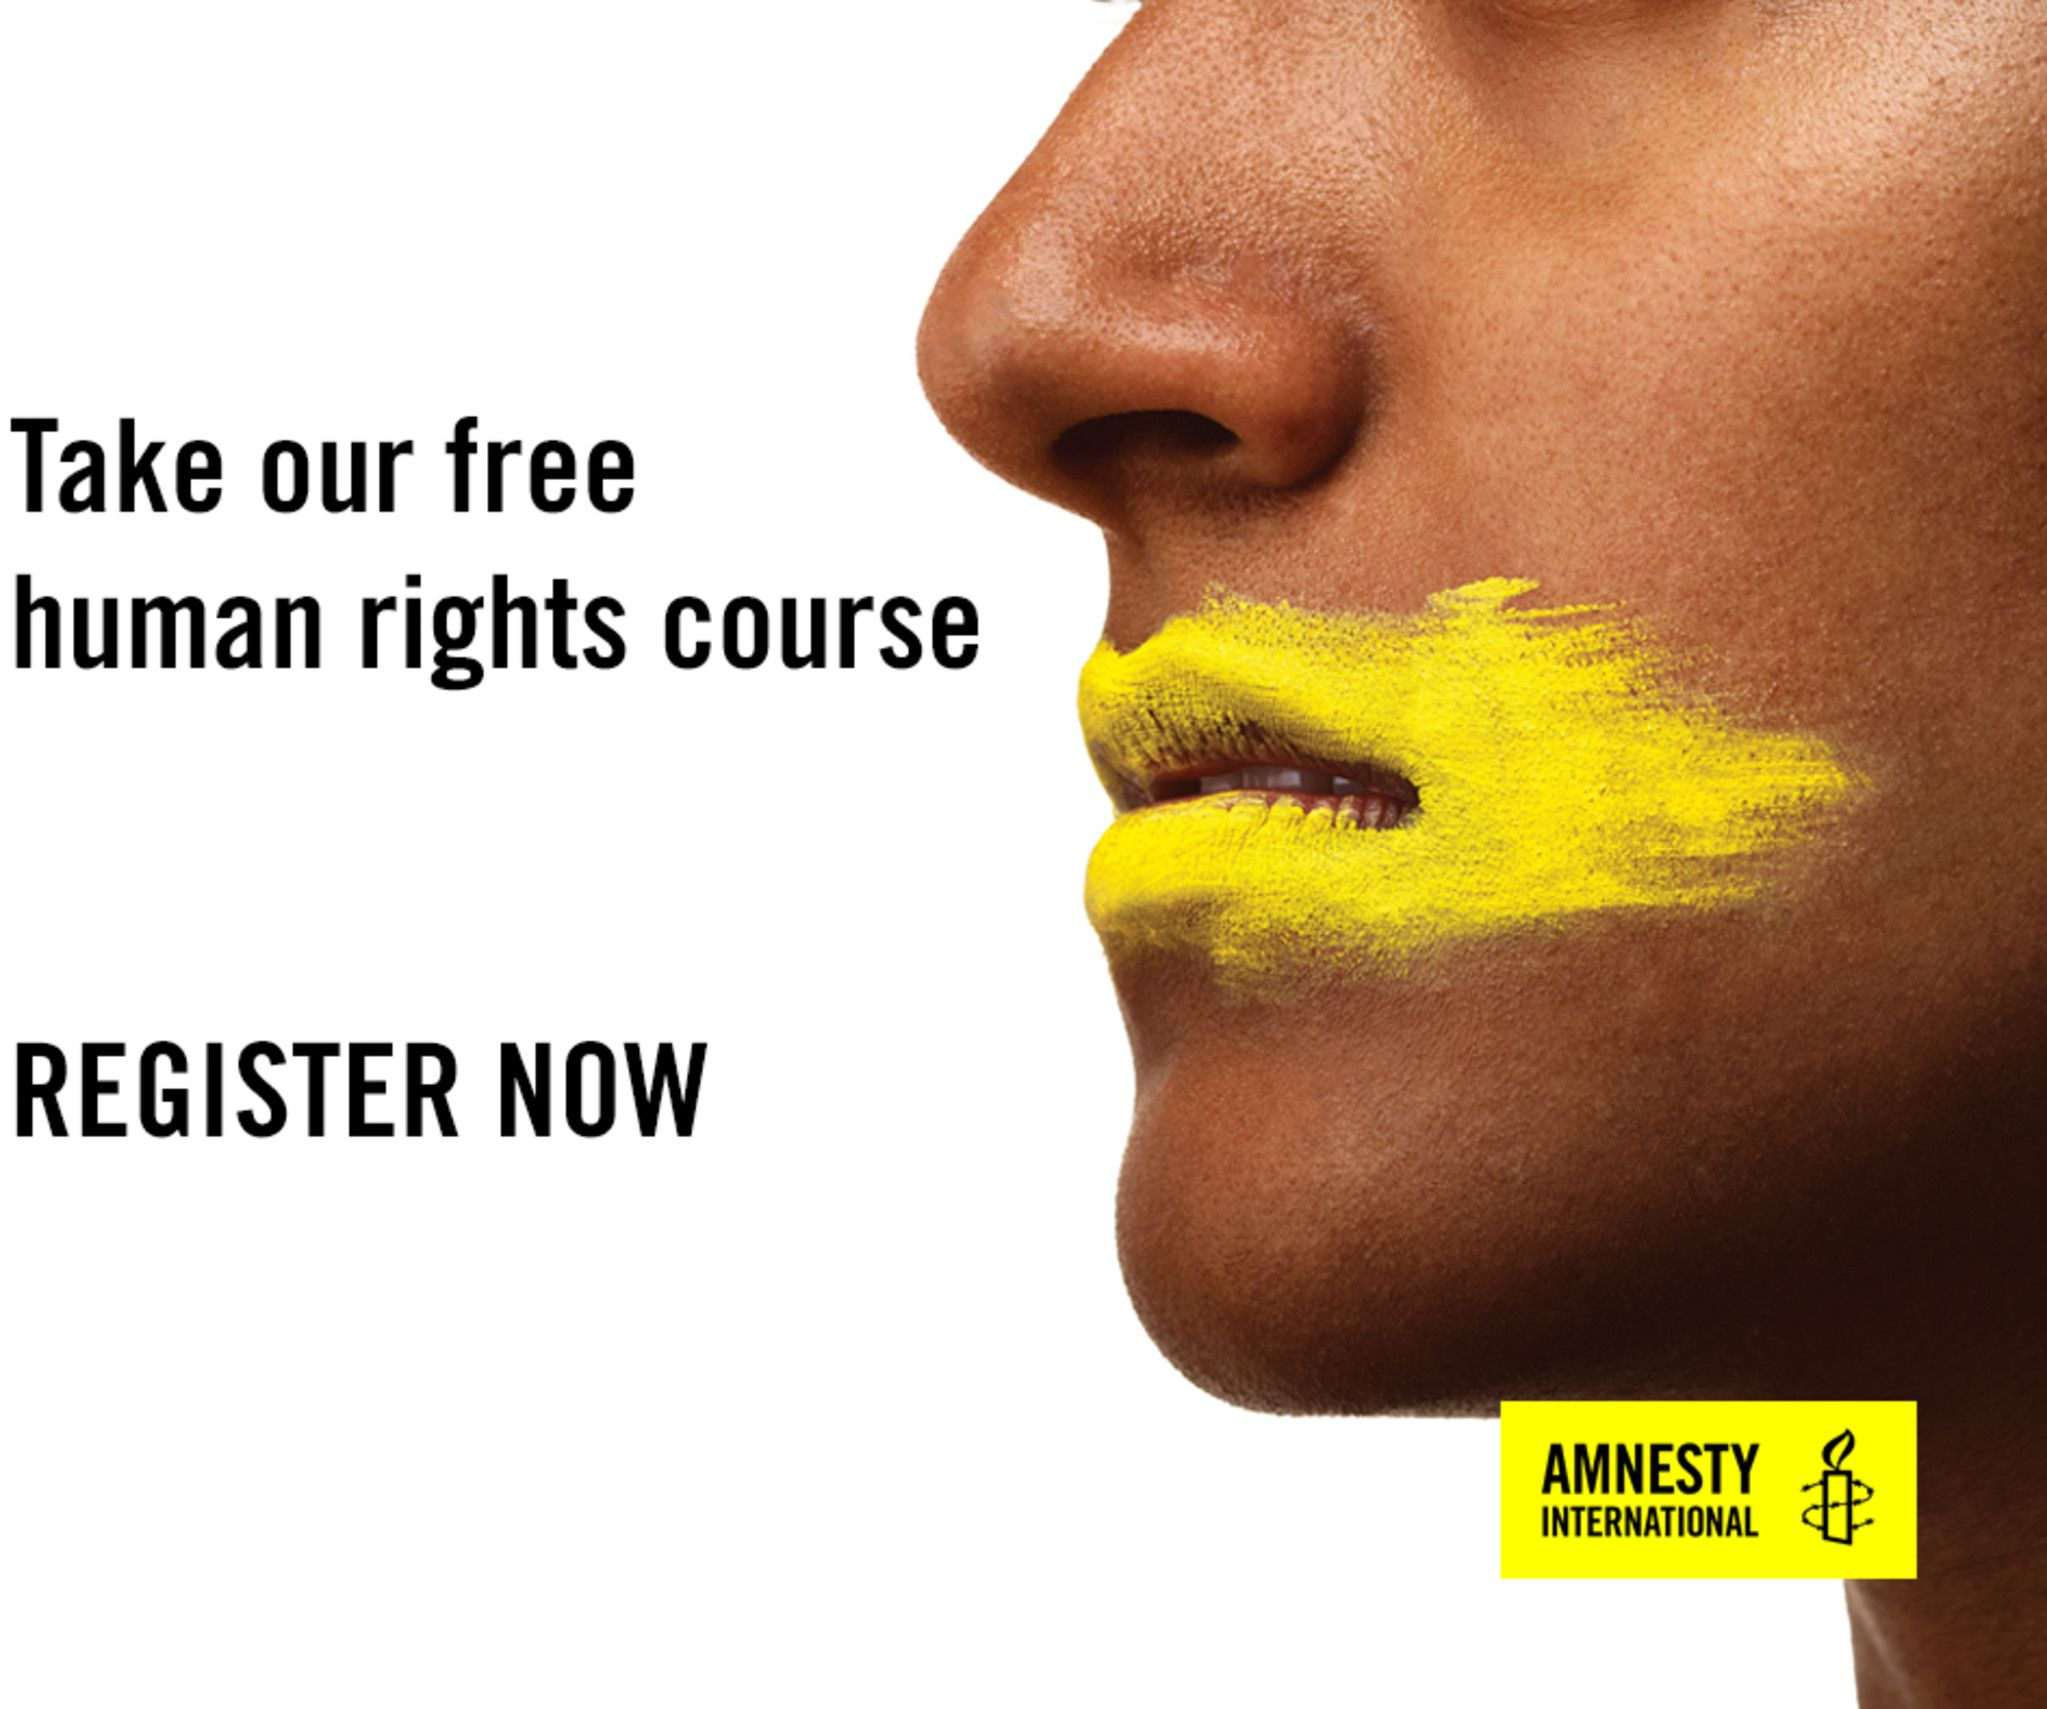 Human Rights The Right To Freedom Of Expression Human Rights Human Amnesty International